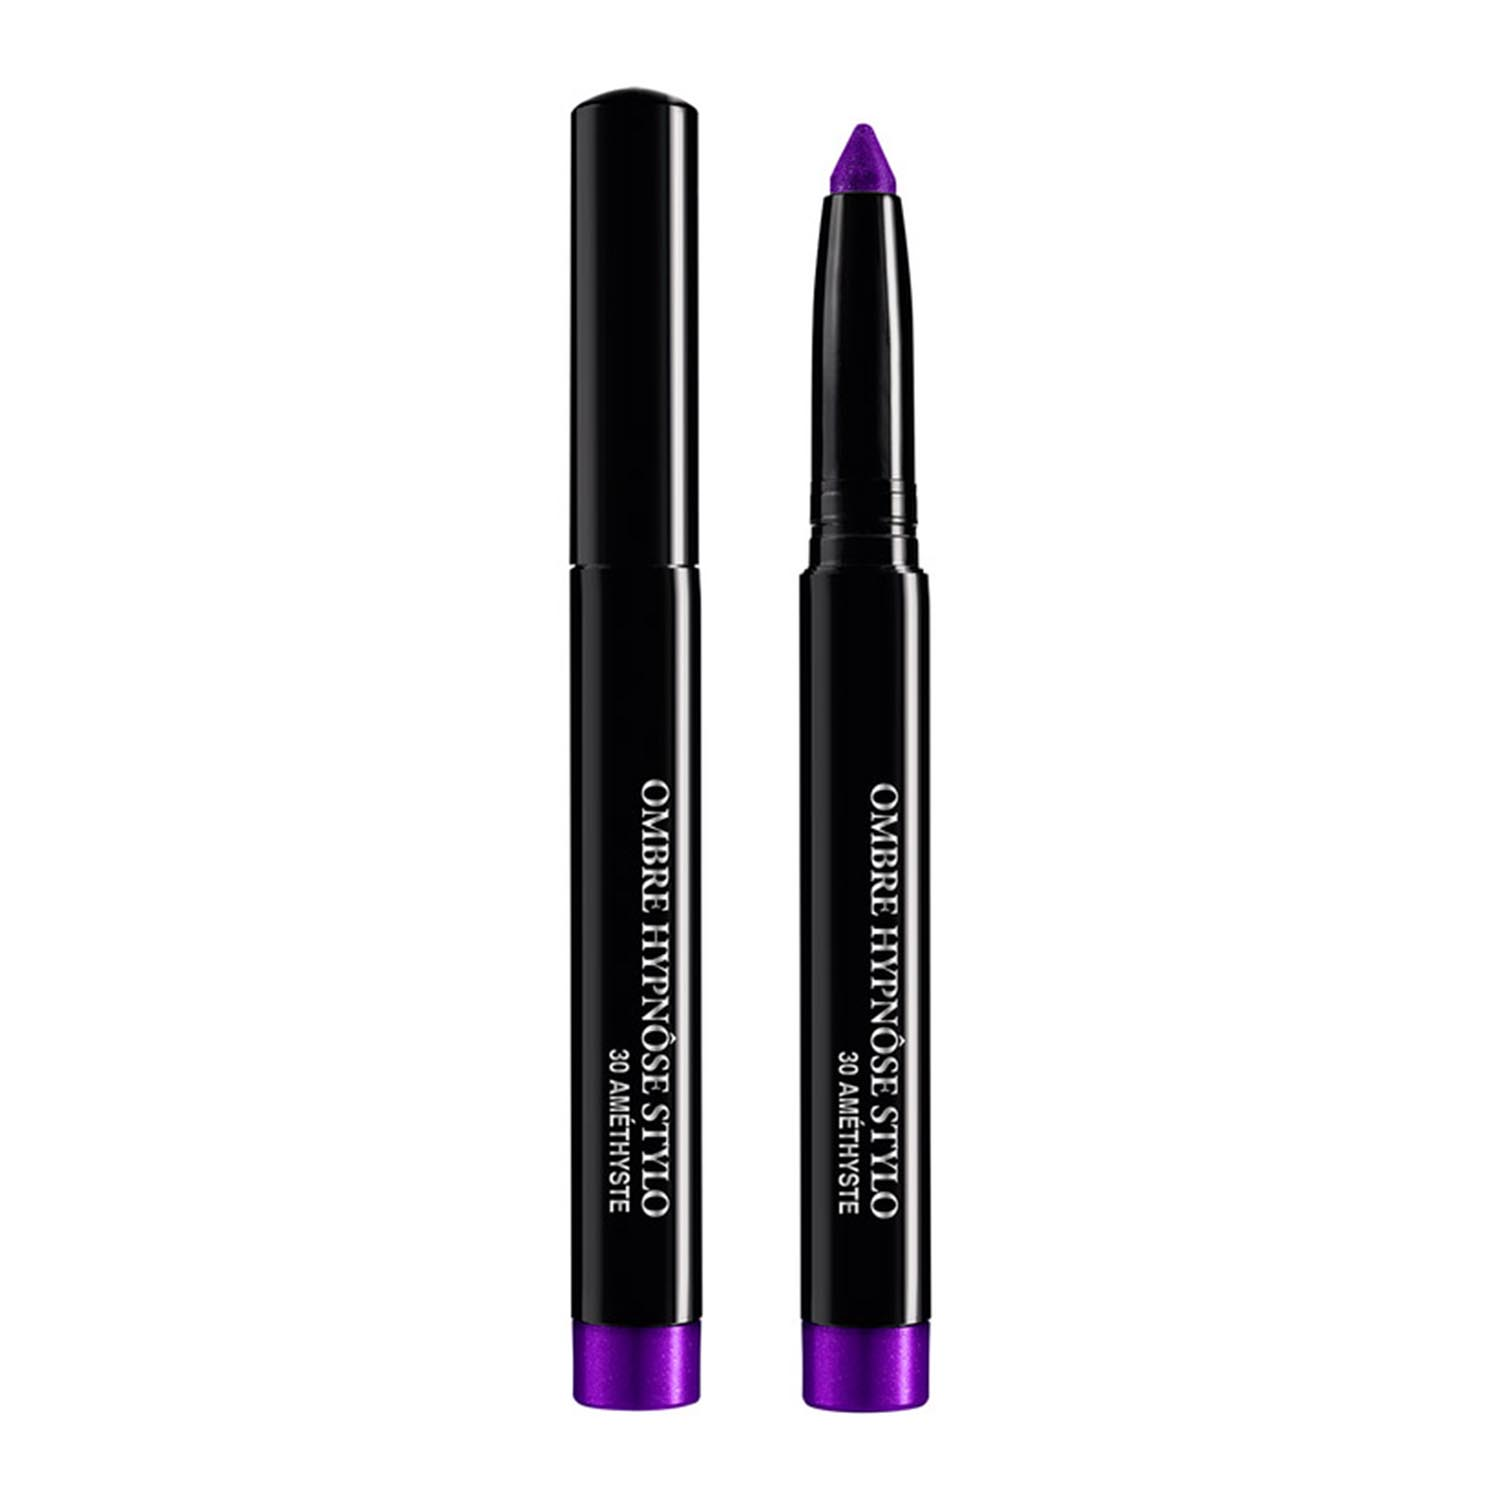 Lancome ombre hypnose stylo 30 amethyste